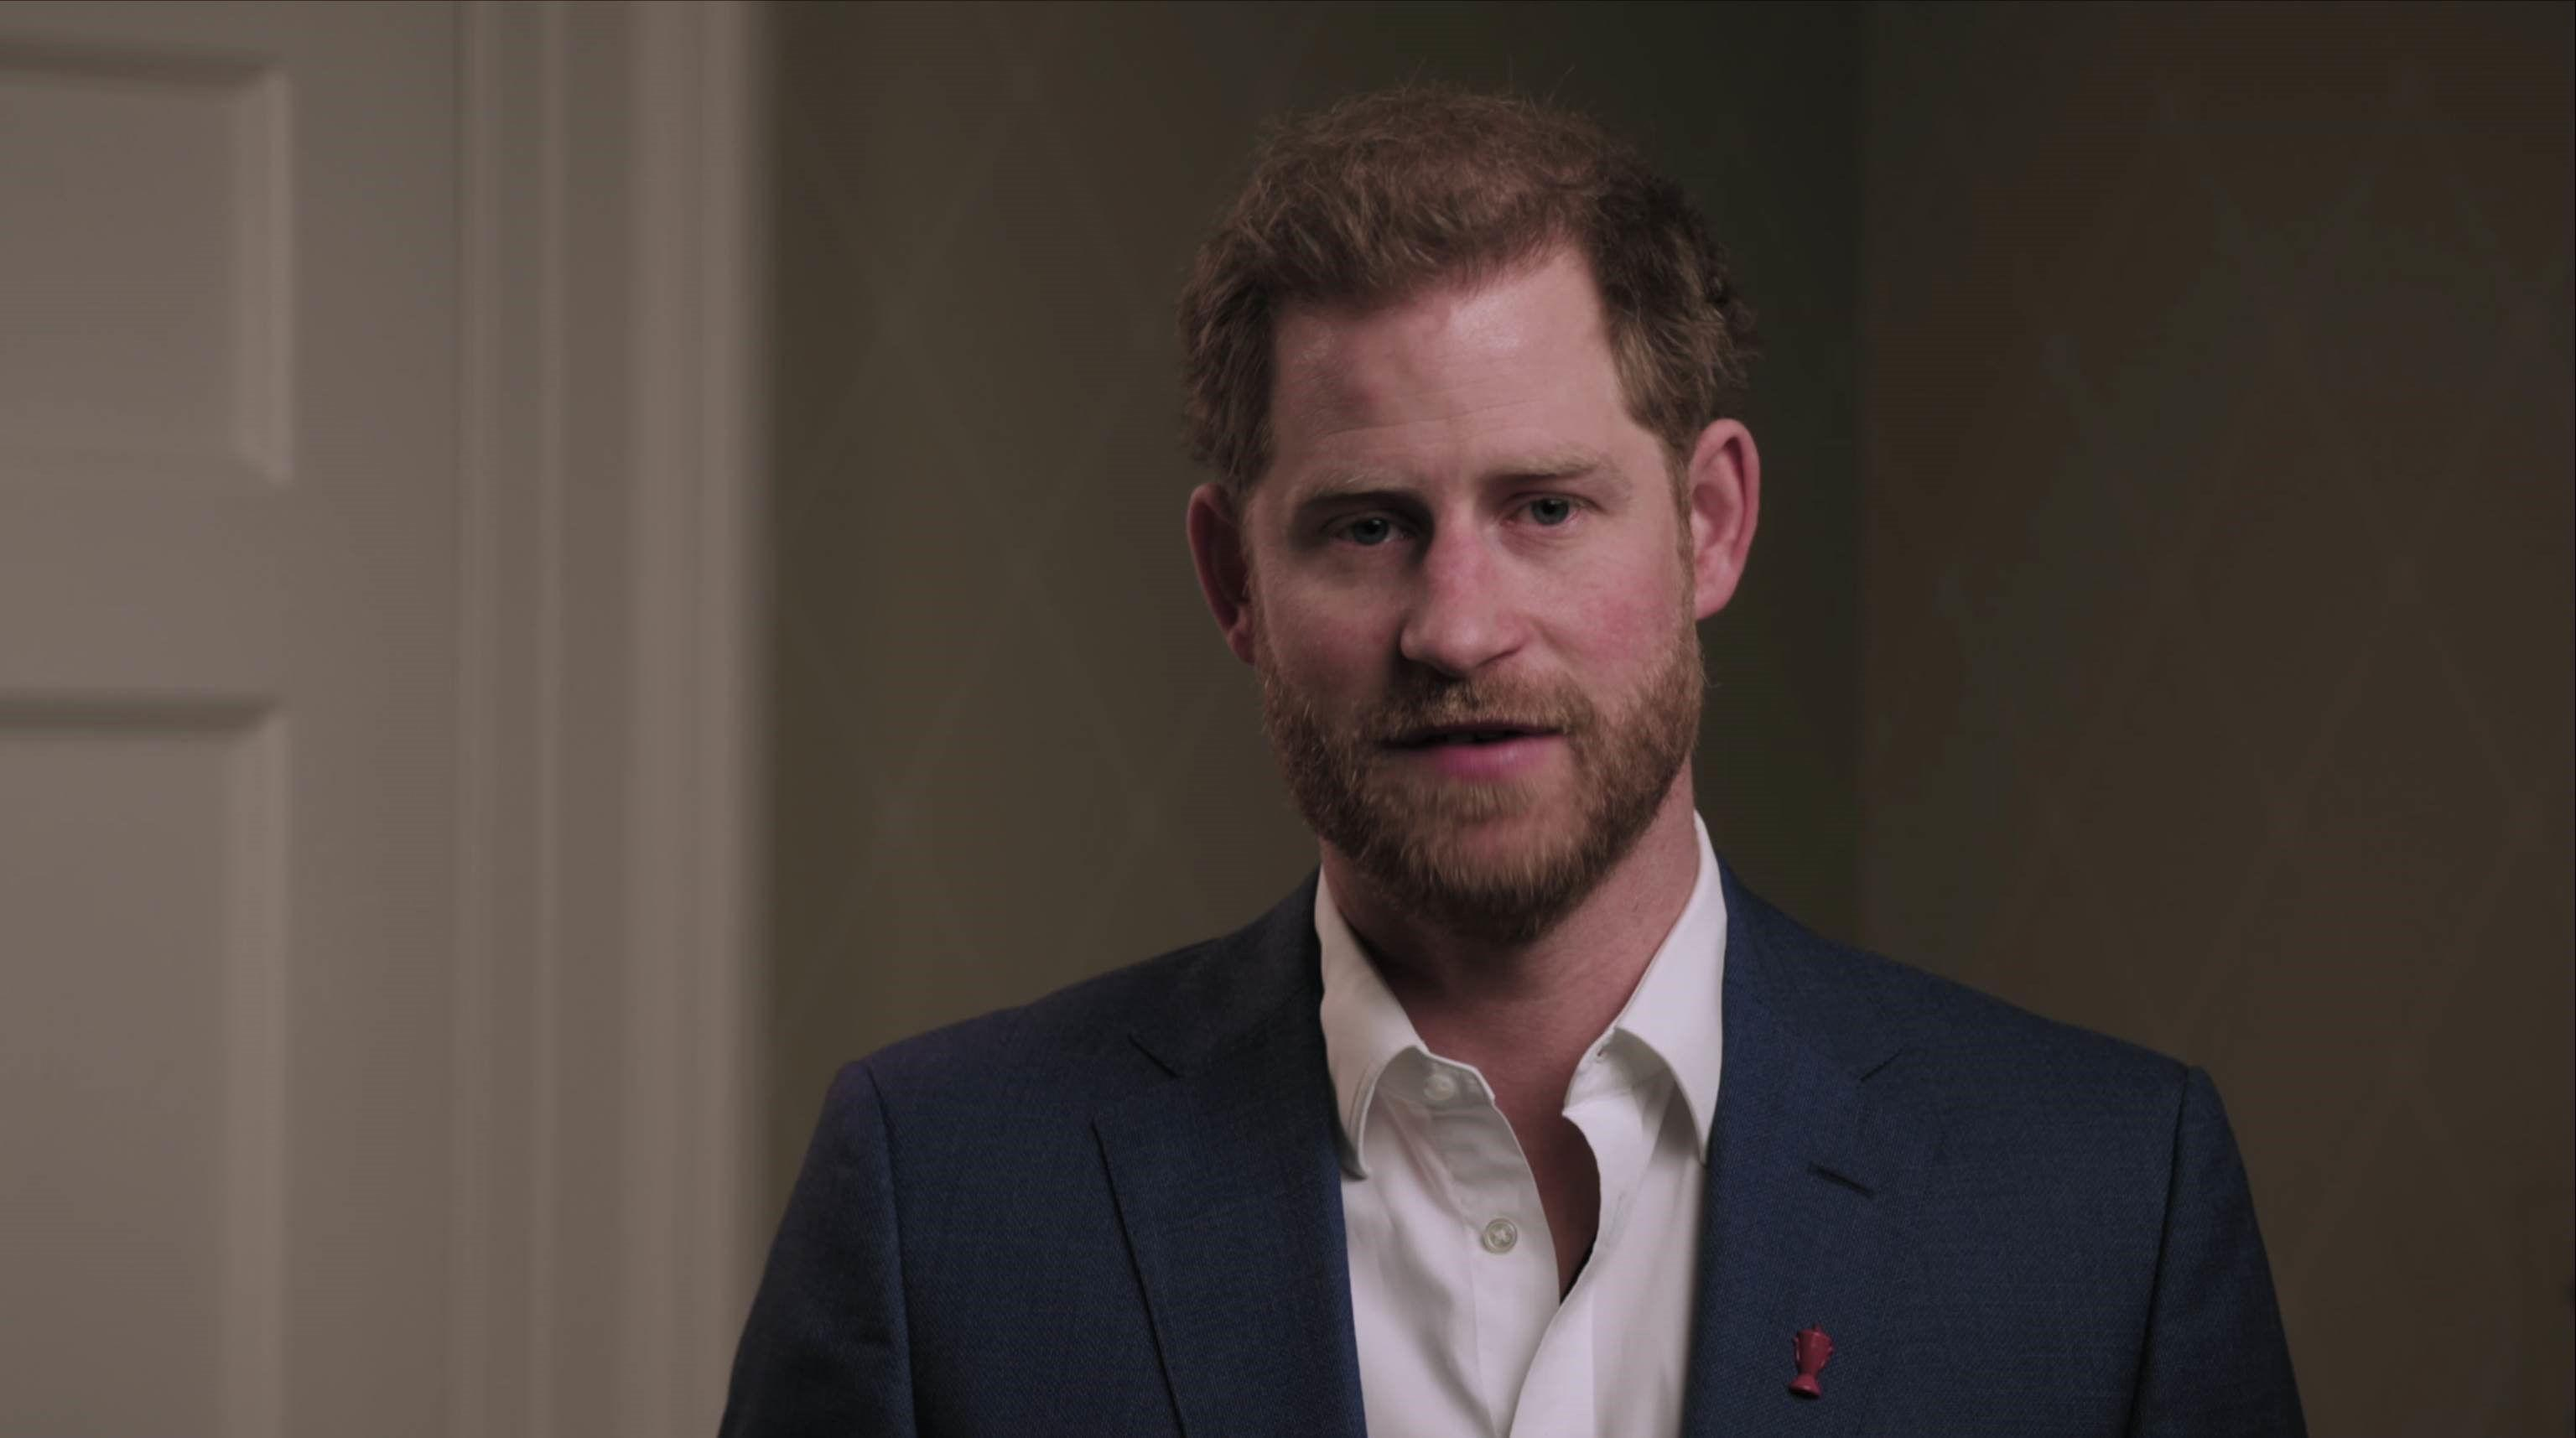 A screengrab taken from a video issued by Rugby League World Cup 2021 (RLWC2021) of the Duke of Sussex, the patron of the Rugby Football League, speaking about mental health. [Photo: PA]